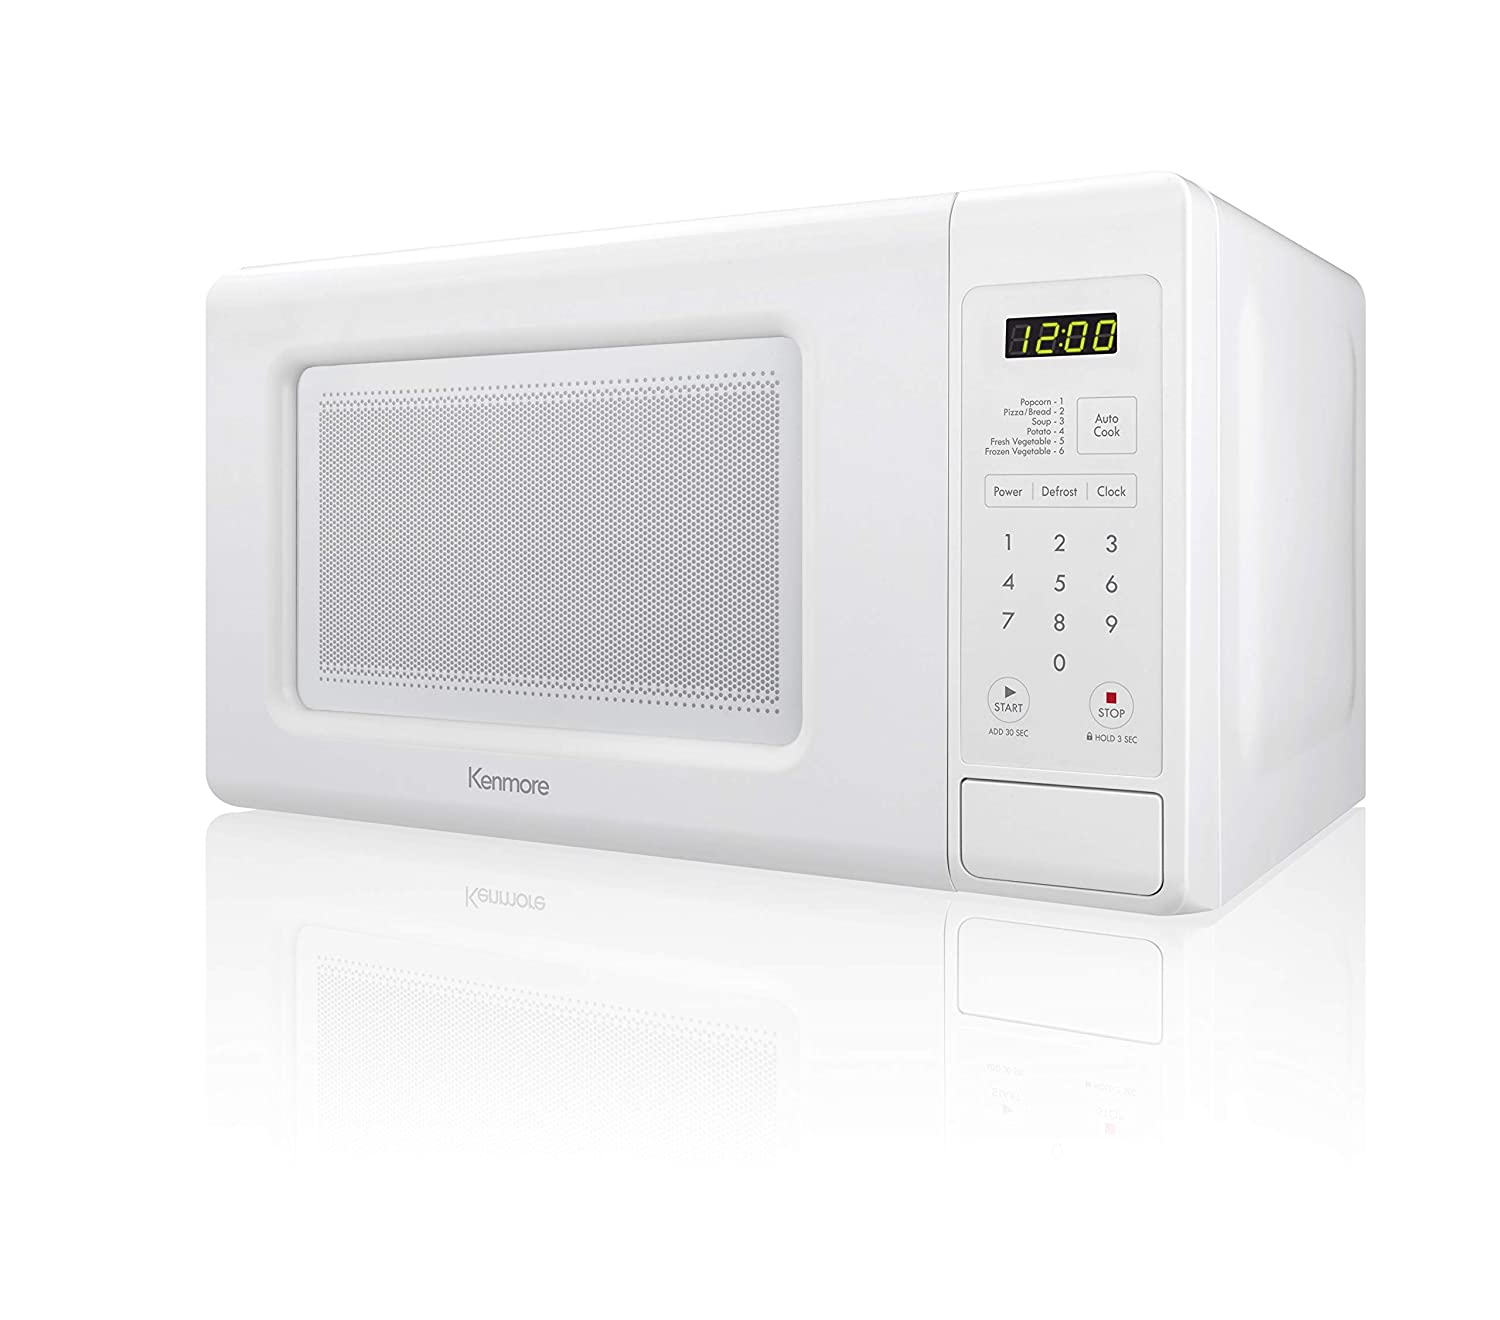 Kenmore 71313 1.3 cu ft Countertop Microwave with Sensor in Stainless Steel